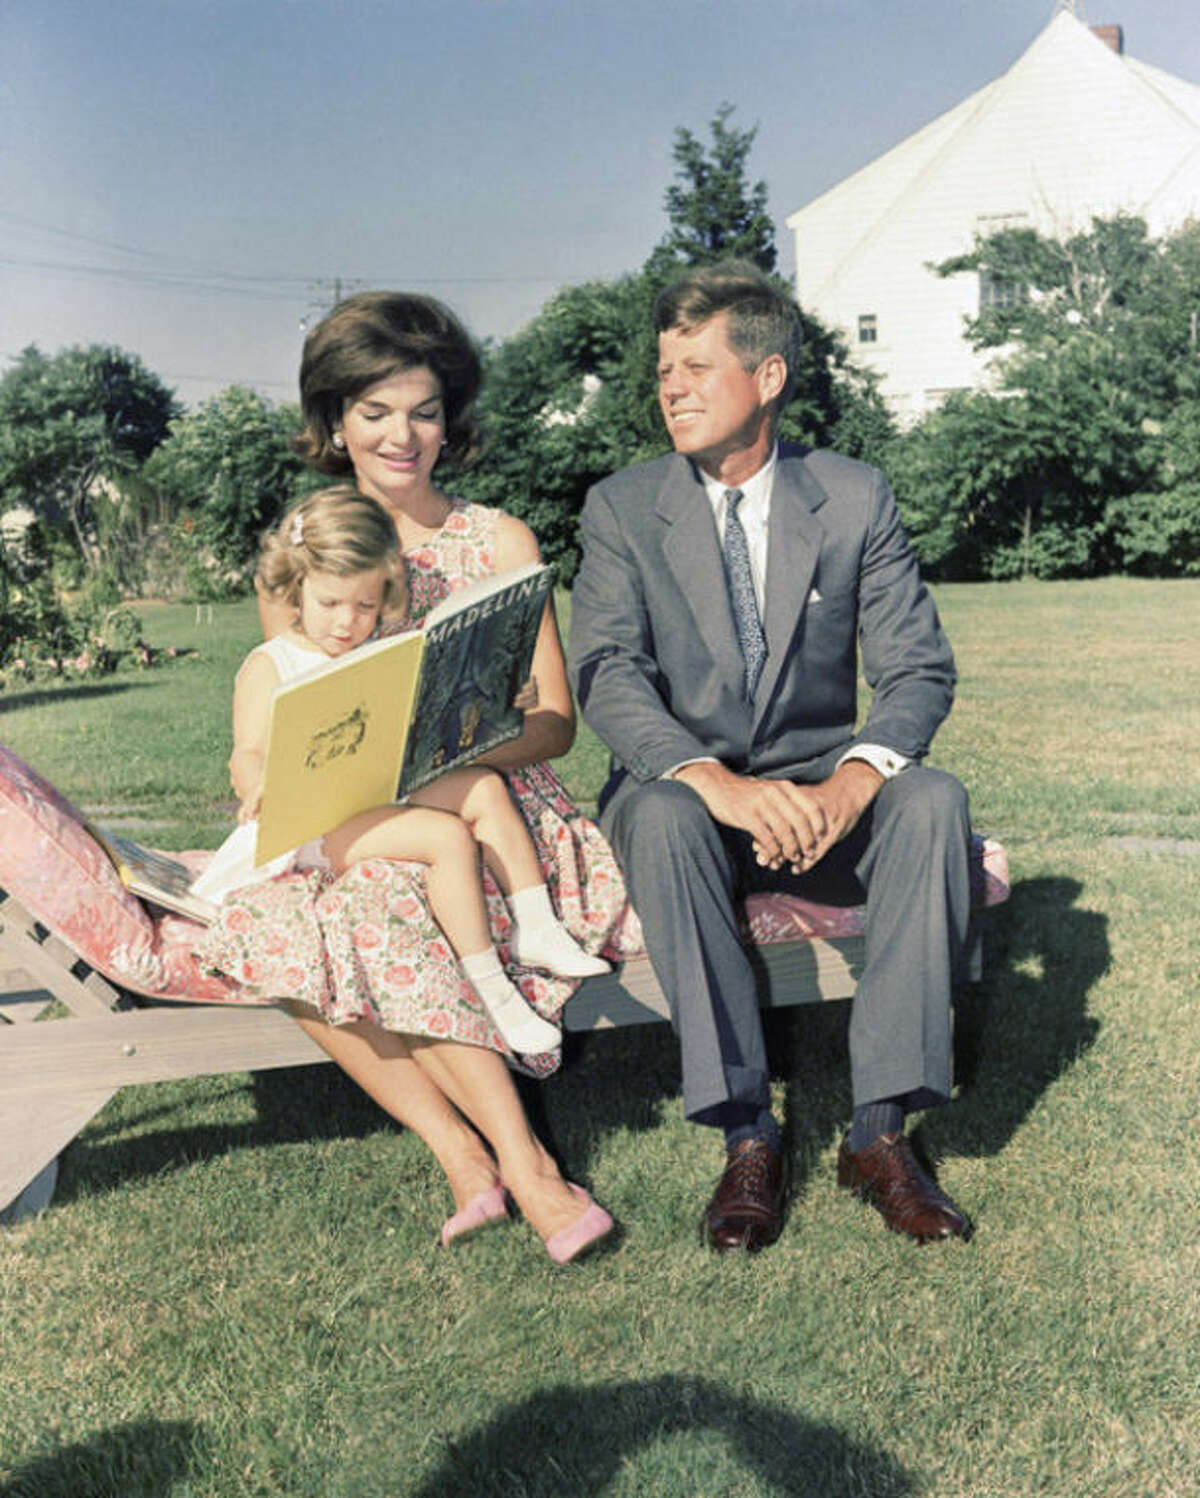 """FILE - In this July 25, 1960 file photo , Sen. John F. Kennedy (D-Mass.) sits with wife, Jacqueline, who reads to their daughter Caroline, at Hyannis Port, Mass. The Kennedy image, the """"mystique"""" that attracts tourists and historians alike, did not begin with his presidency and is in no danger of ending 50 years after his death. Its journey has been uneven, but resilient _ a young and still-evolving politician whose name was sanctified by his assassination, upended by discoveries of womanizing, hidden health problems and political intrigue, and forgiven in numerous polls that place JFK among the most beloved of former presidents. (AP Photo)"""